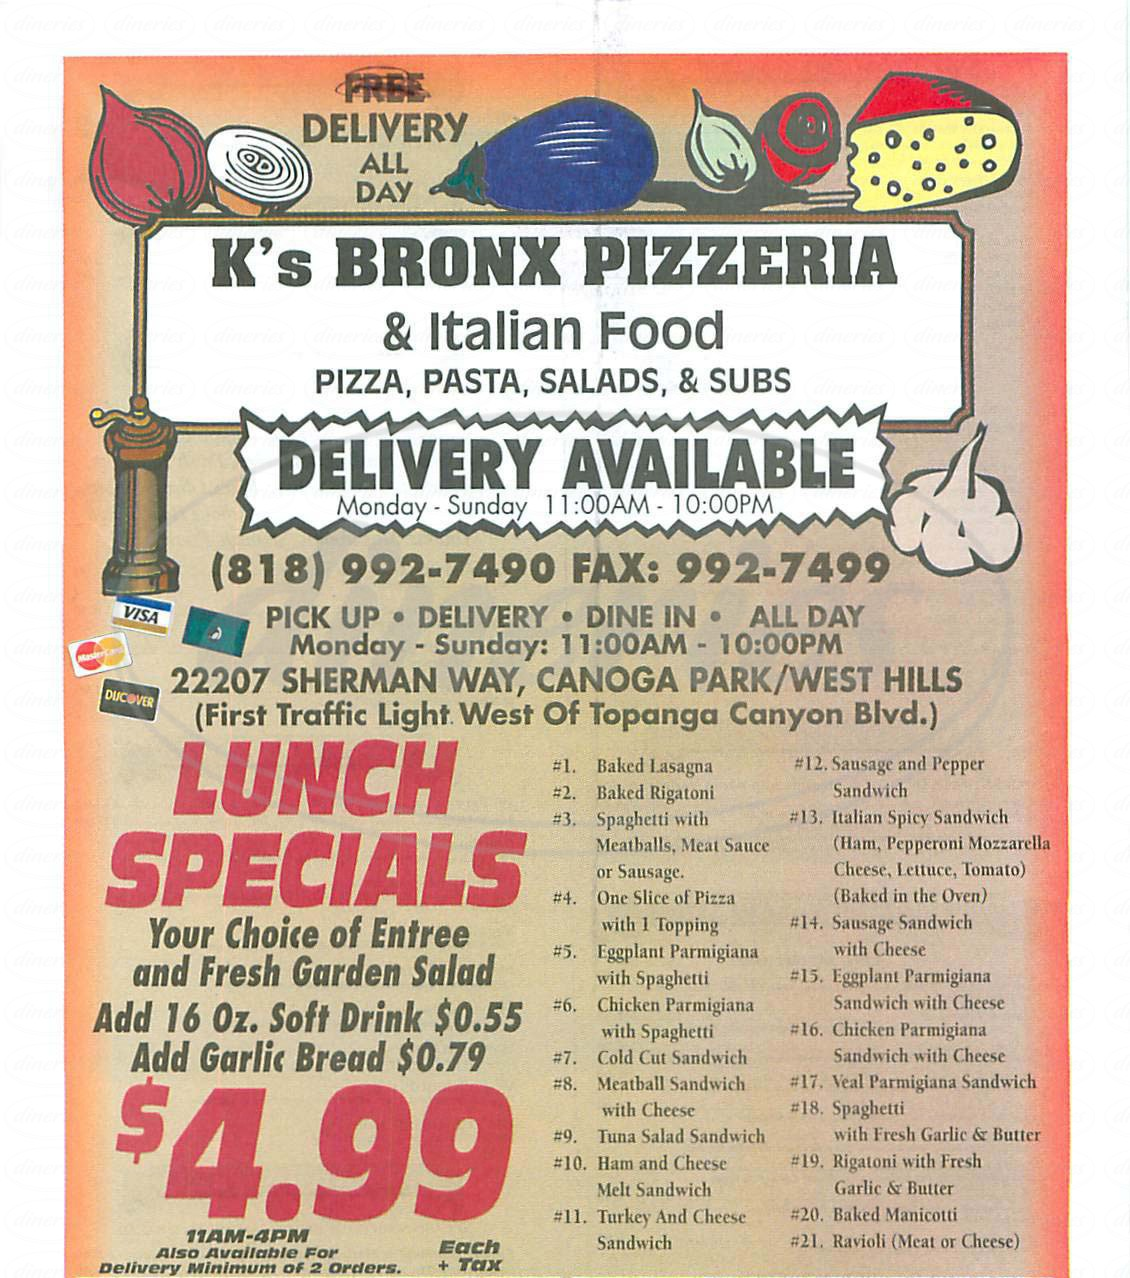 menu for K's Bronx Pizzeria & Italian Foods